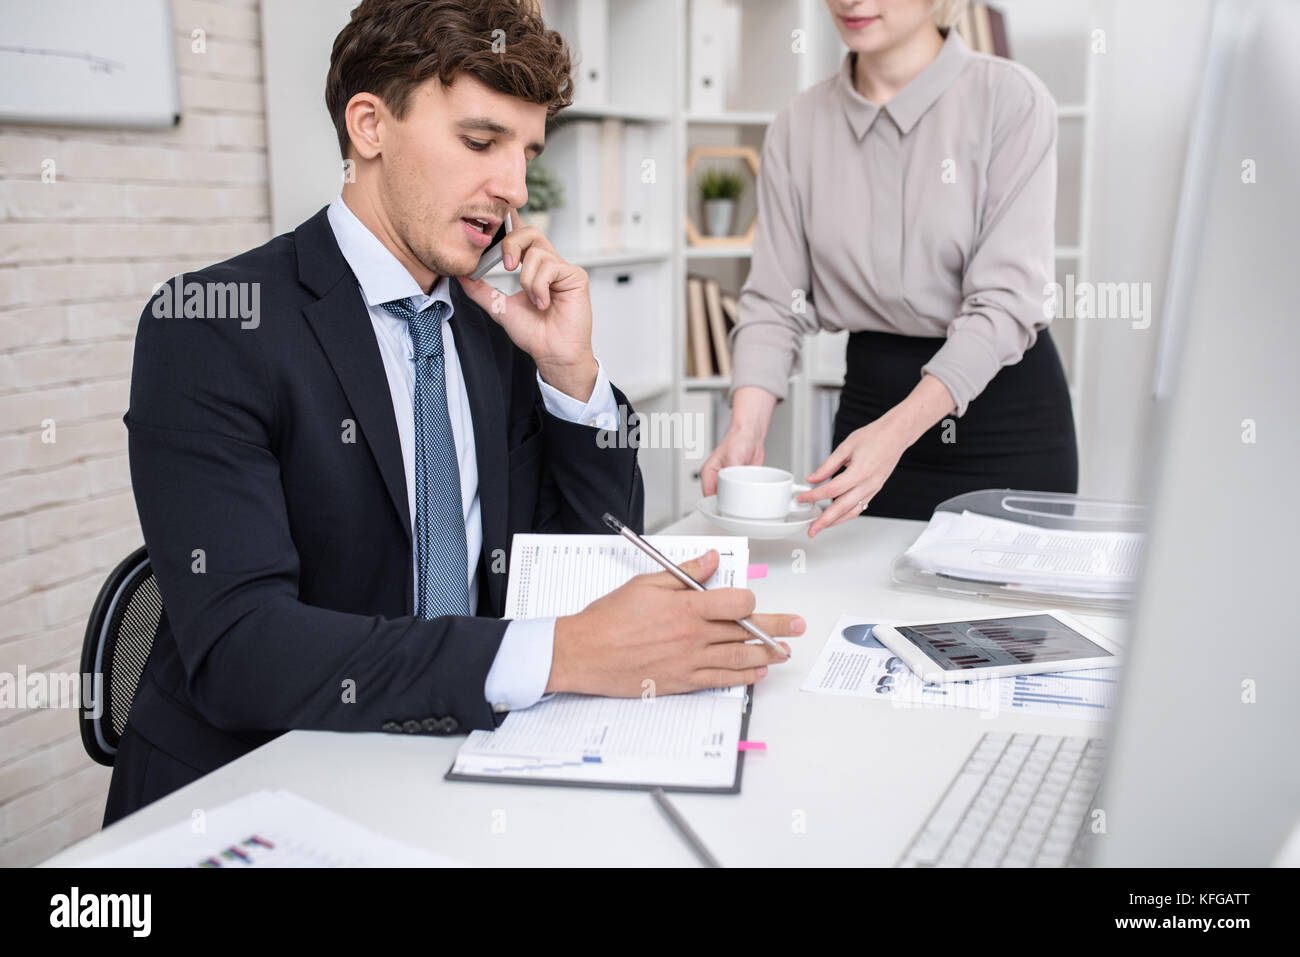 Business Executive Busy Working in Office Stock Photo